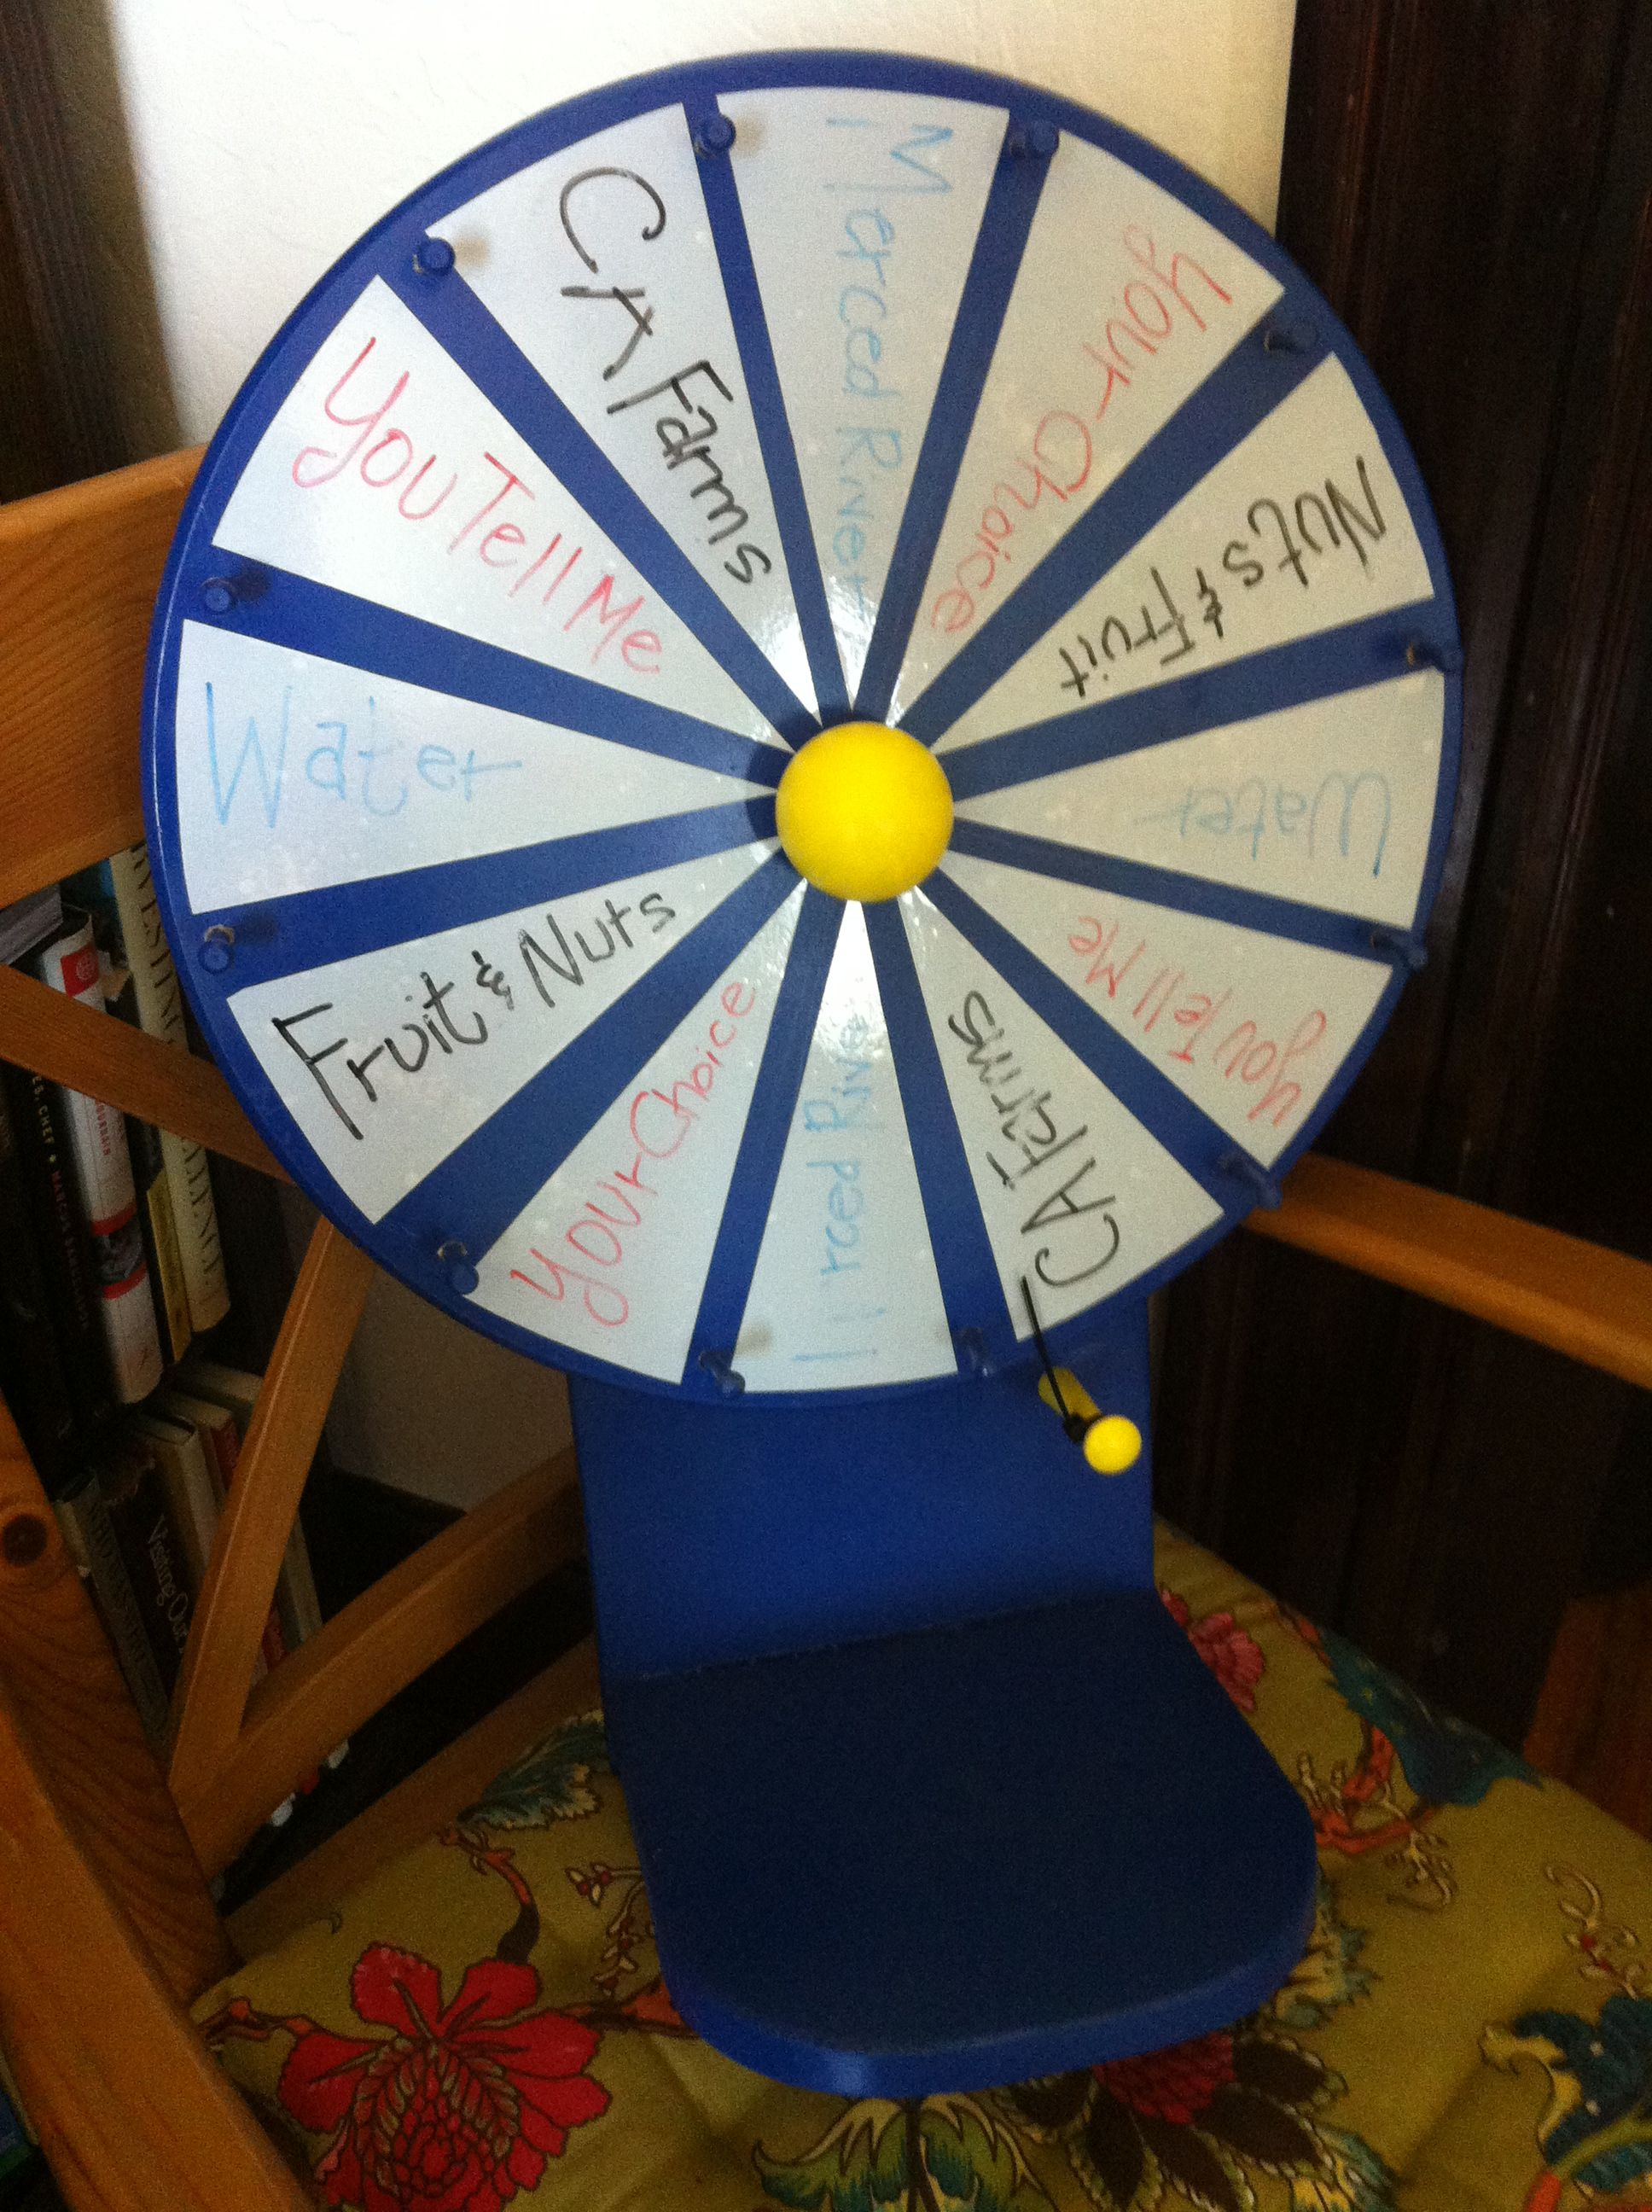 diy prize wheel i made for outreach events. triangle pie pieces are